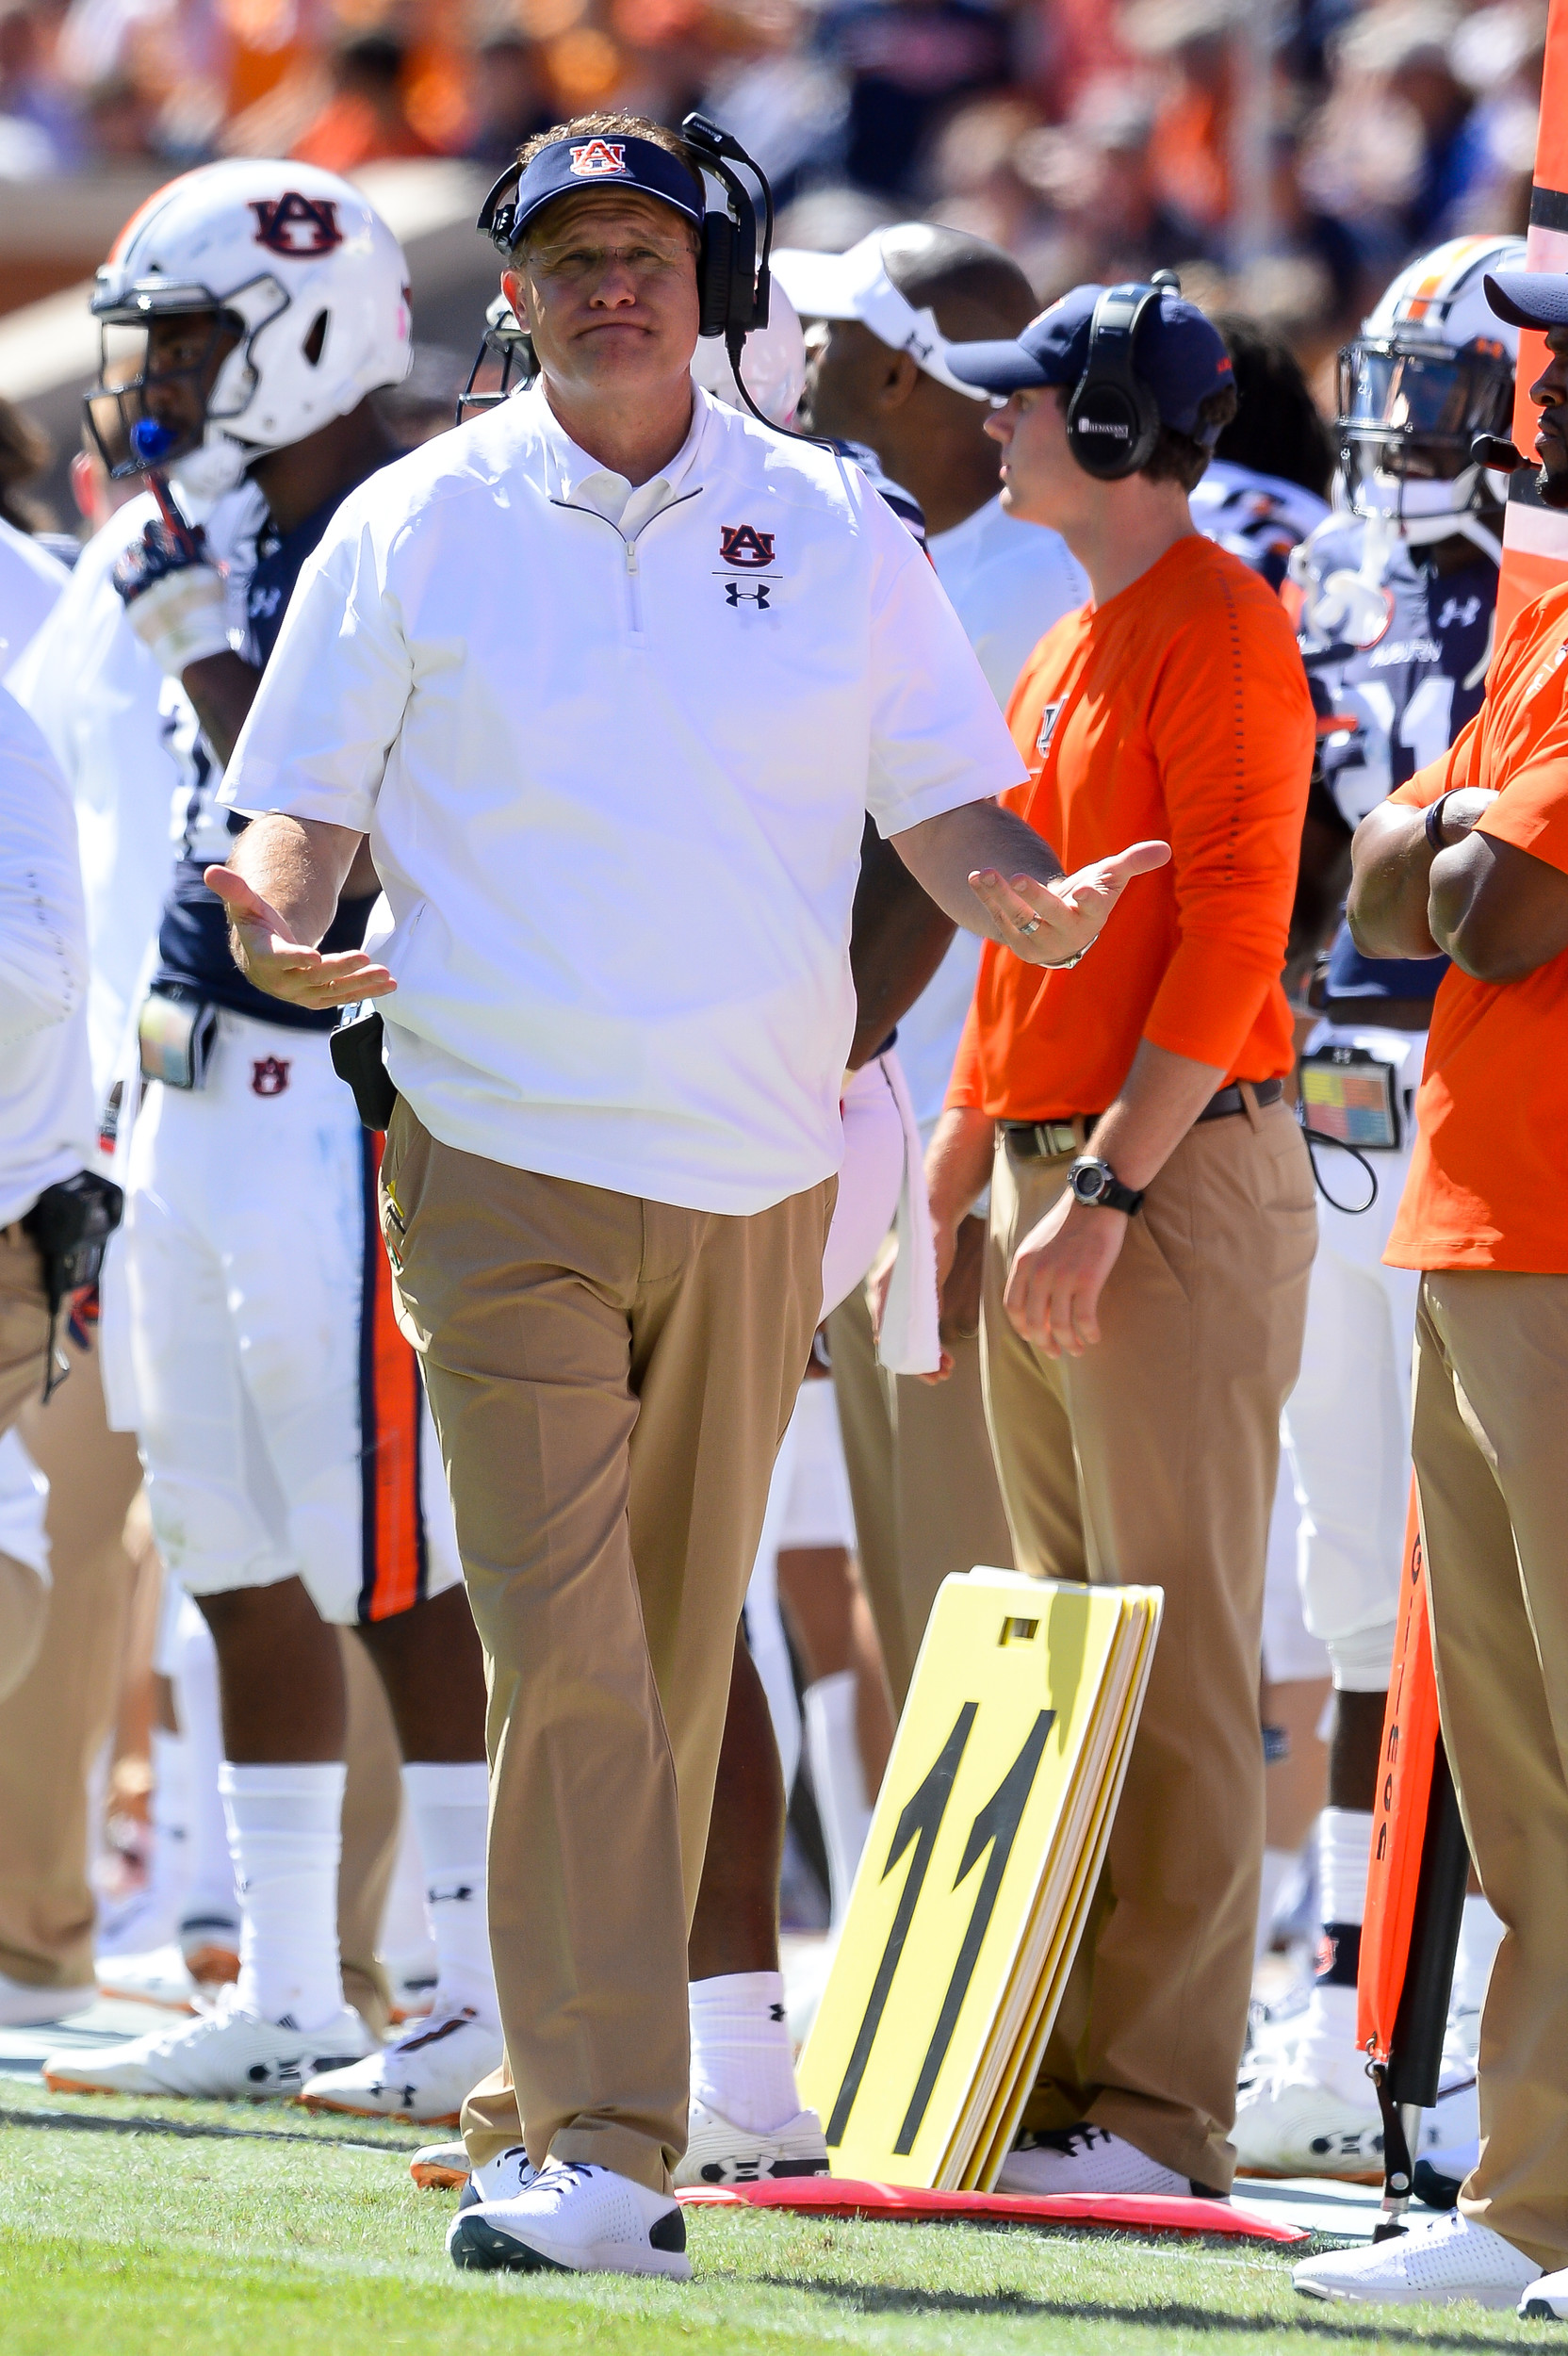 Auburn Tigers head coach Gus Malzahn during the second half of Saturday's game, at Jordan-Hare Stadium in Auburn, AL. Daily Mountain Eagle -  Jeff Johnsey